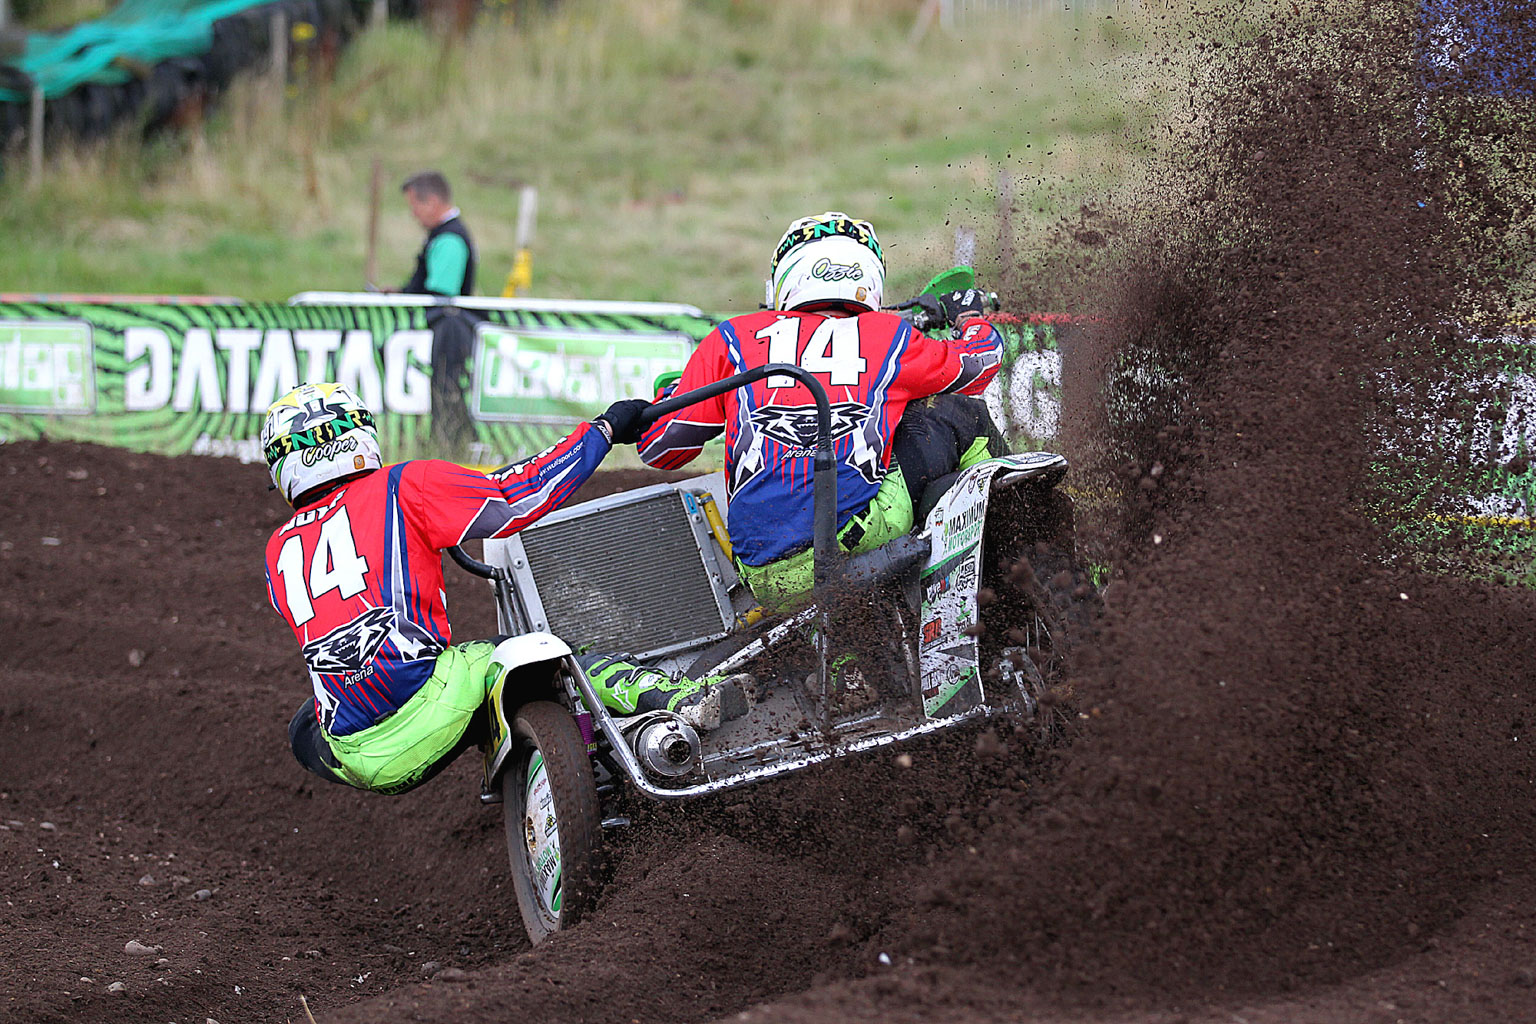 Sam Osbaldiston and Nathan Cooper in IMBA Sidecar action